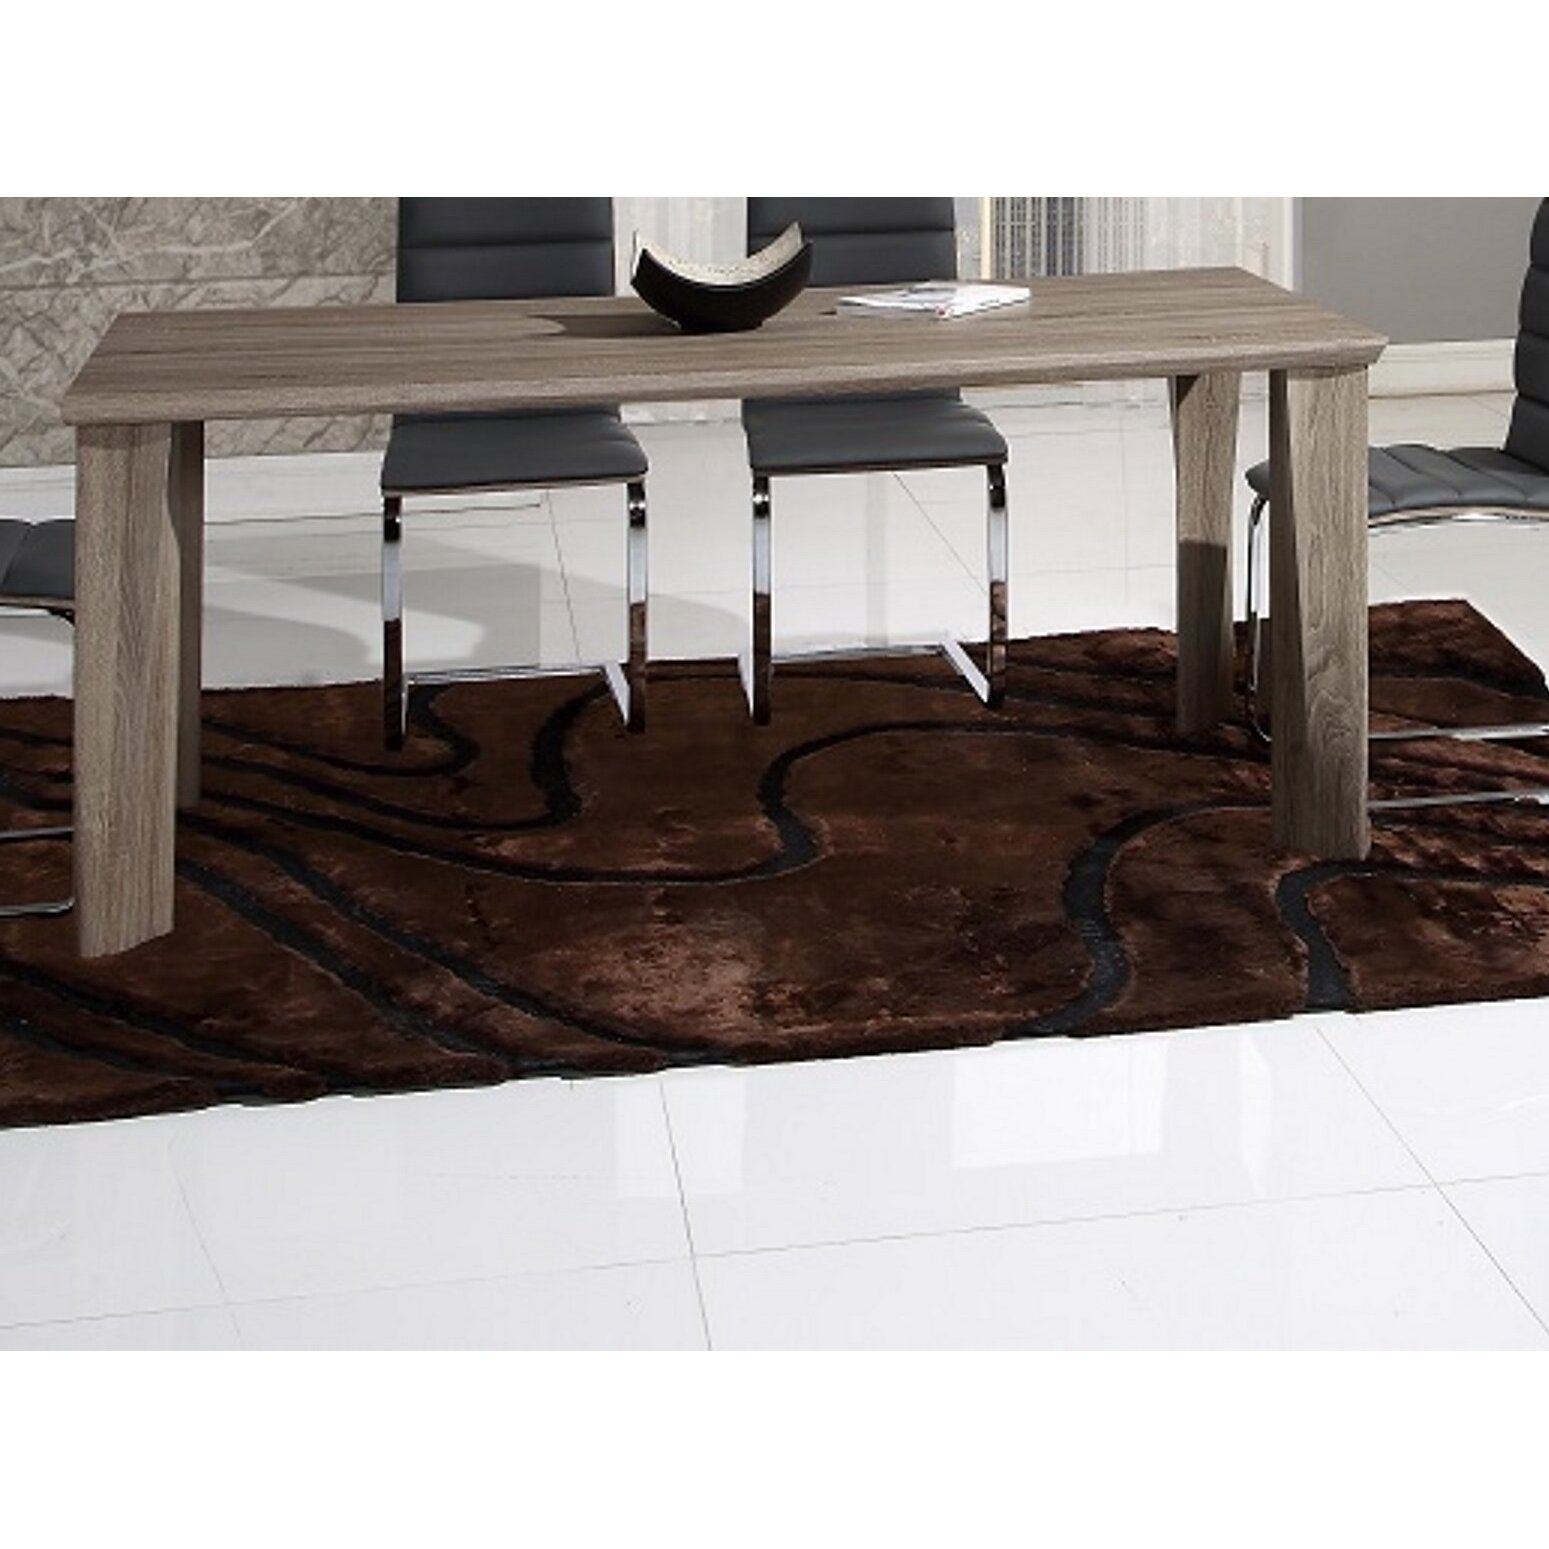 Global furniture usa dining table global furniture usa for Dining chairs t k maxx